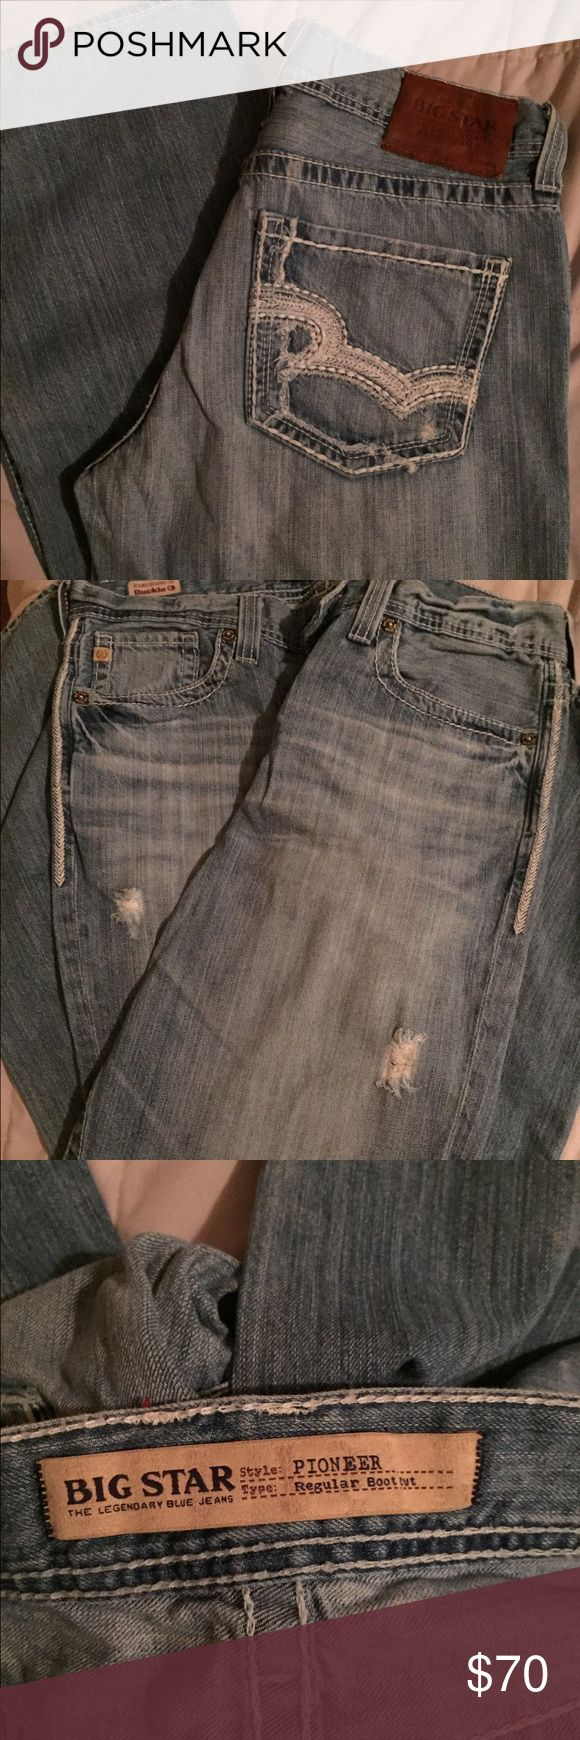 Men's Big Star Pioneer Jeans Big Star Pioneer Bootcut Jeans... worn look on legs.. see pics for description.. size 33 Long.. price is not negotiable Big Star Jeans Bootcut